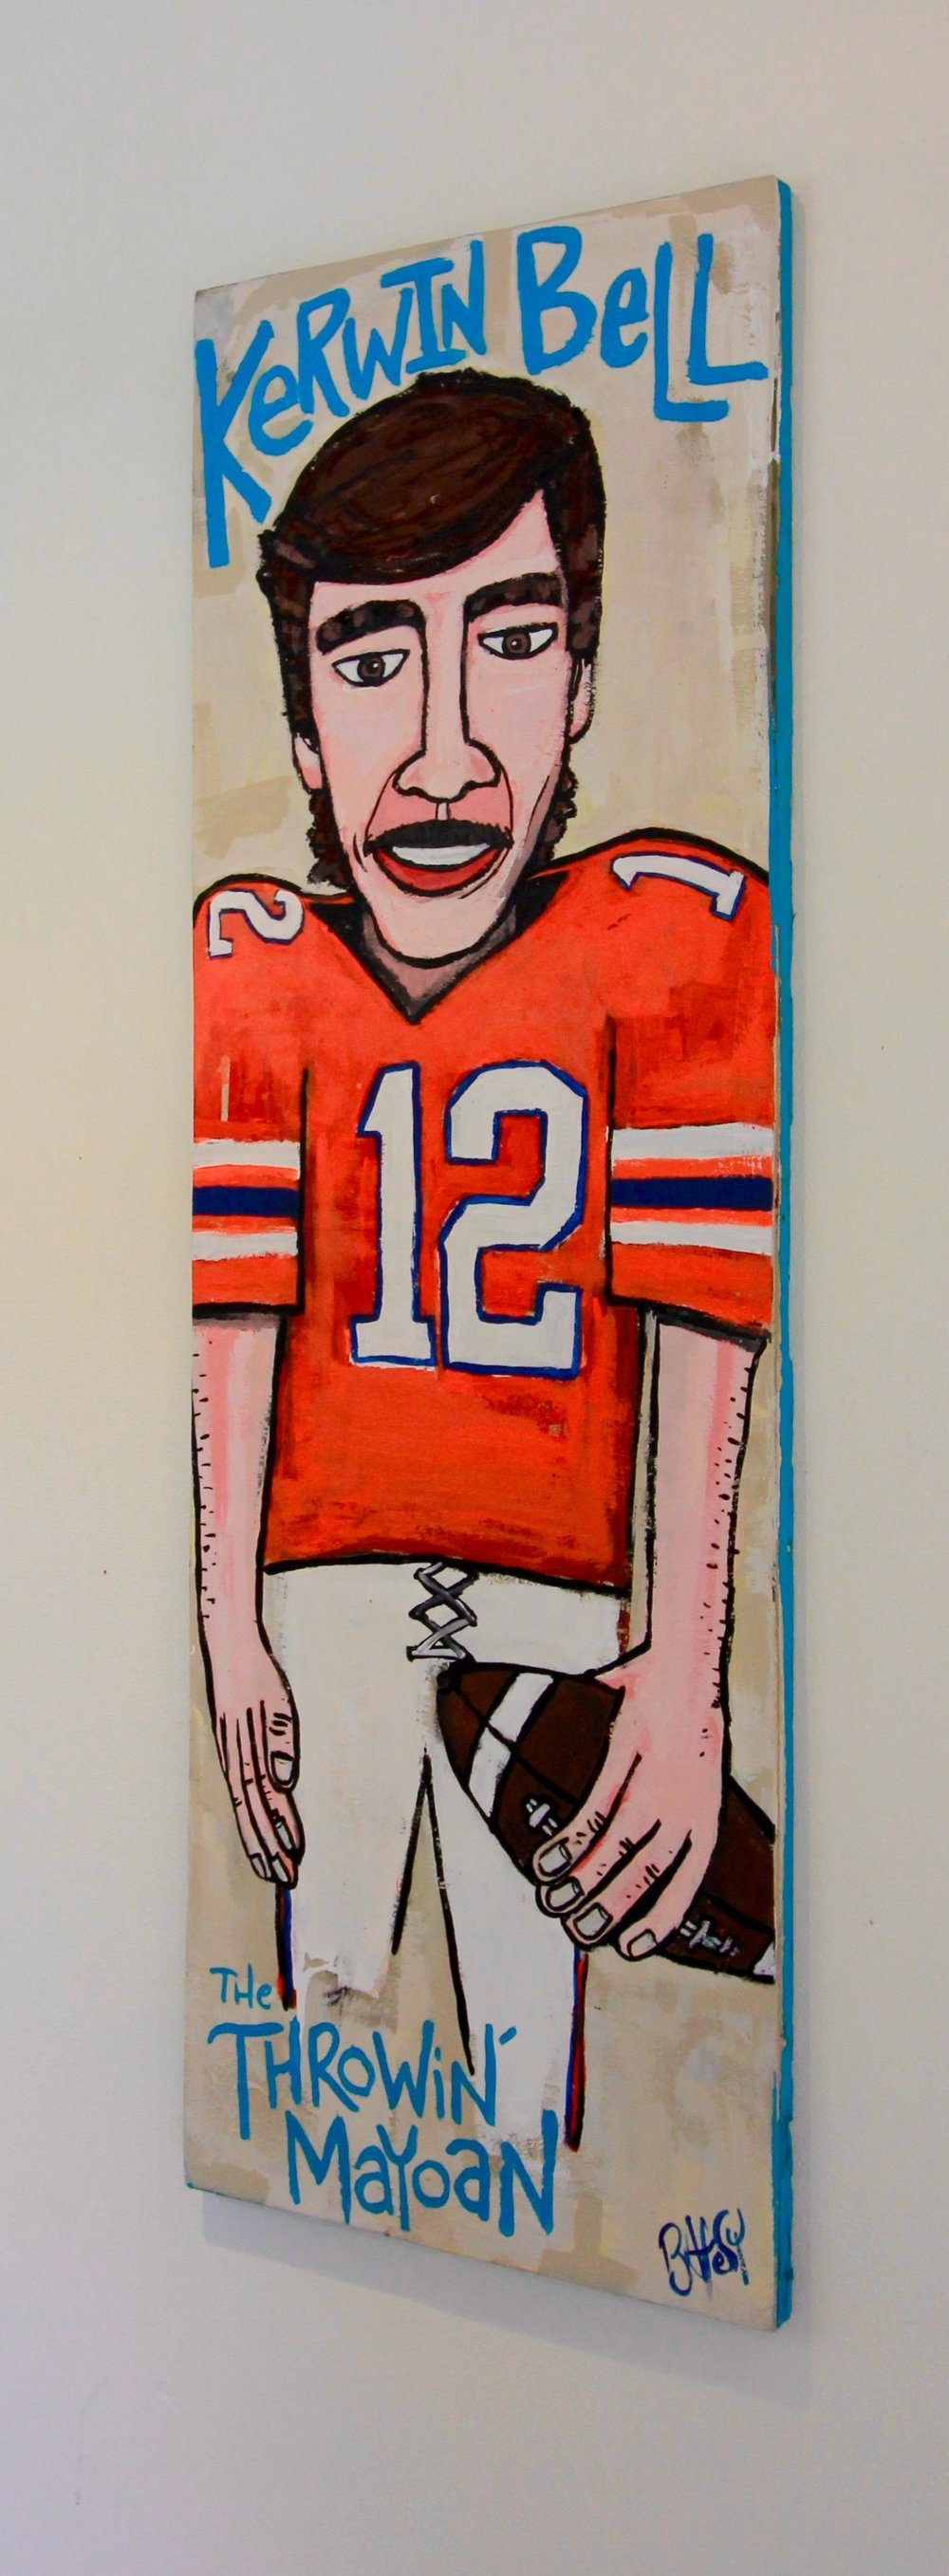 "The Throwin' Mayoan - Kerwin Bell / 16.5""x48"" / Commissioned / SOLD"